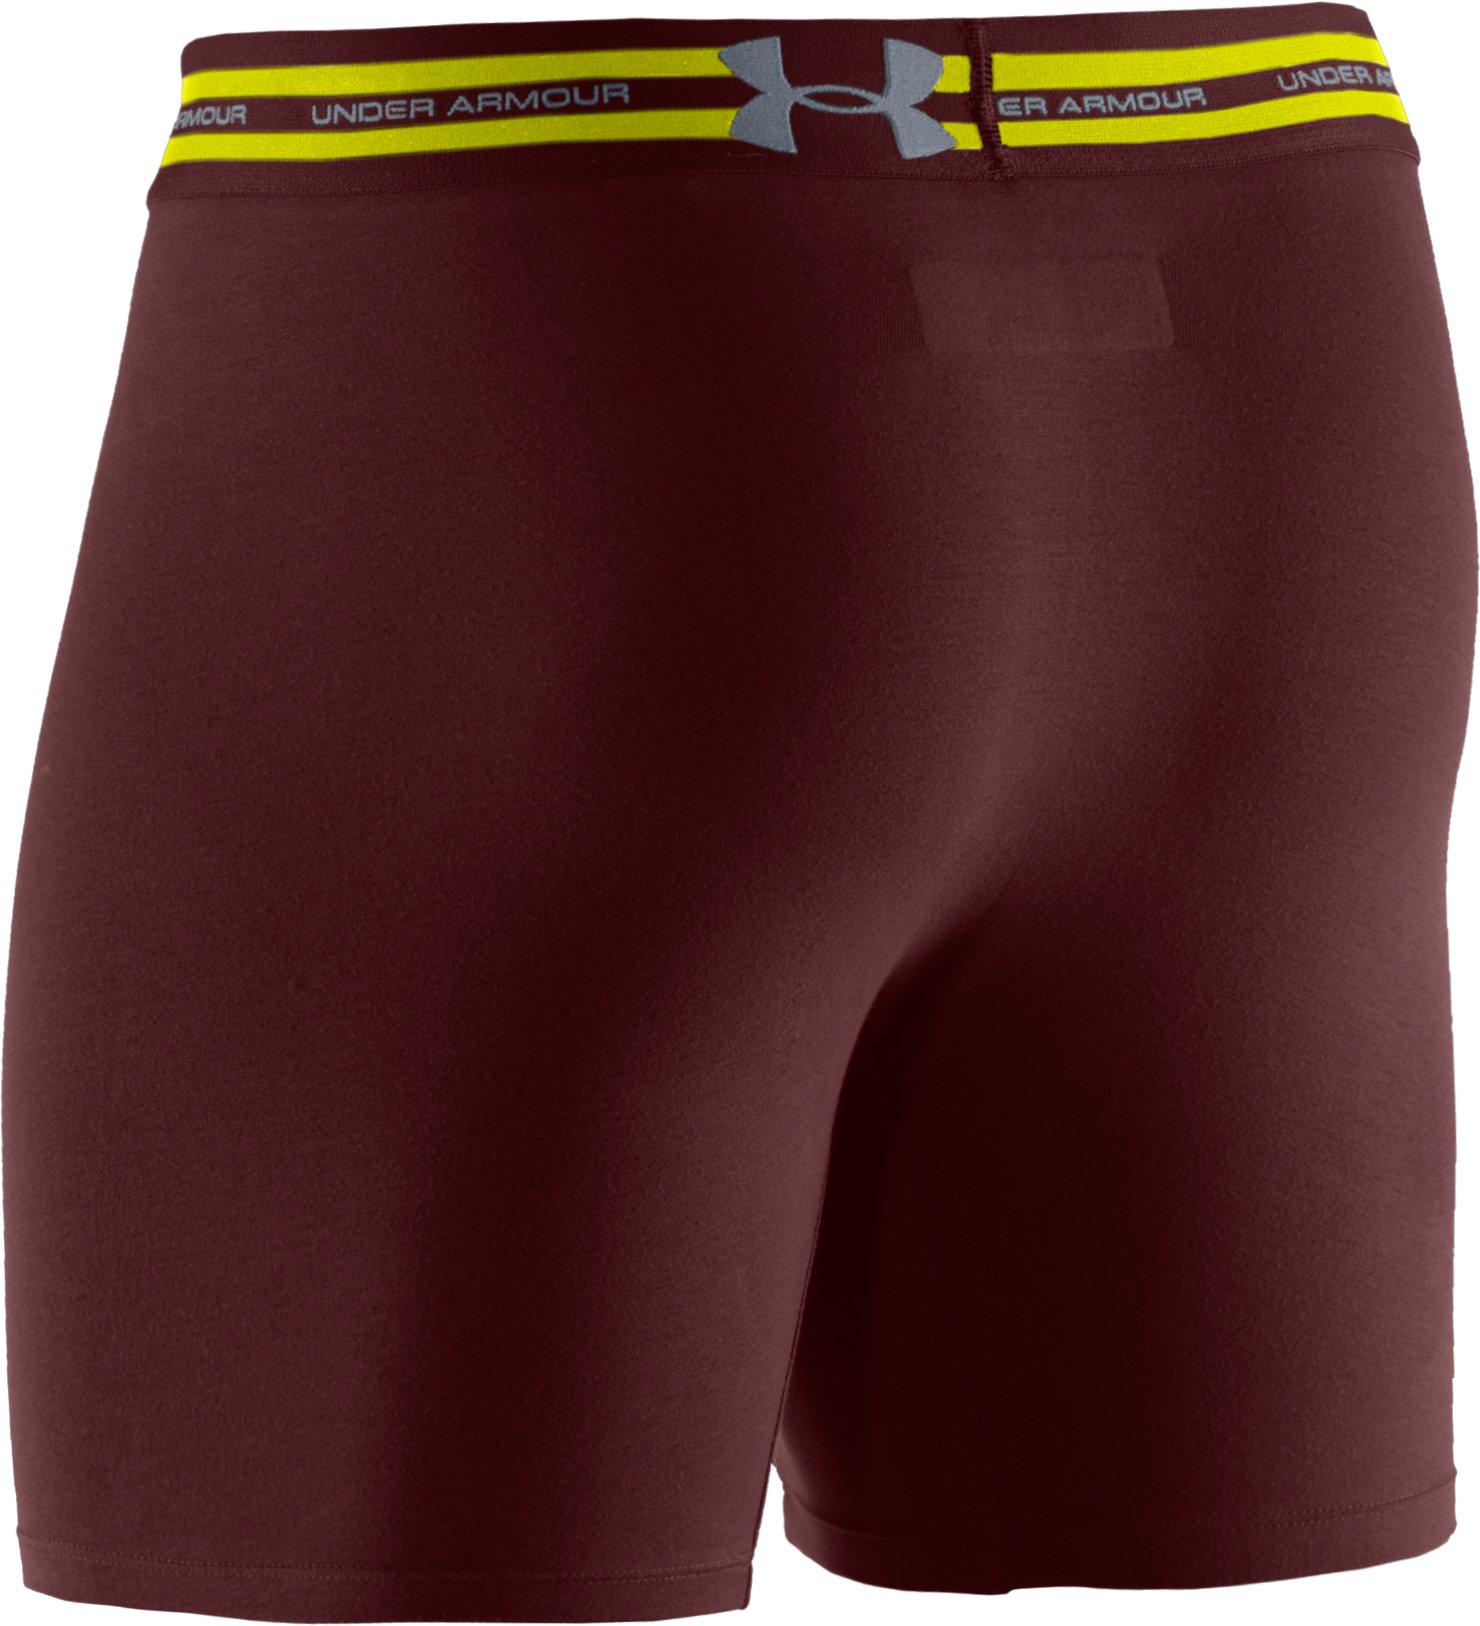 "Men's Charged Cotton® 6"", Ox Blood"